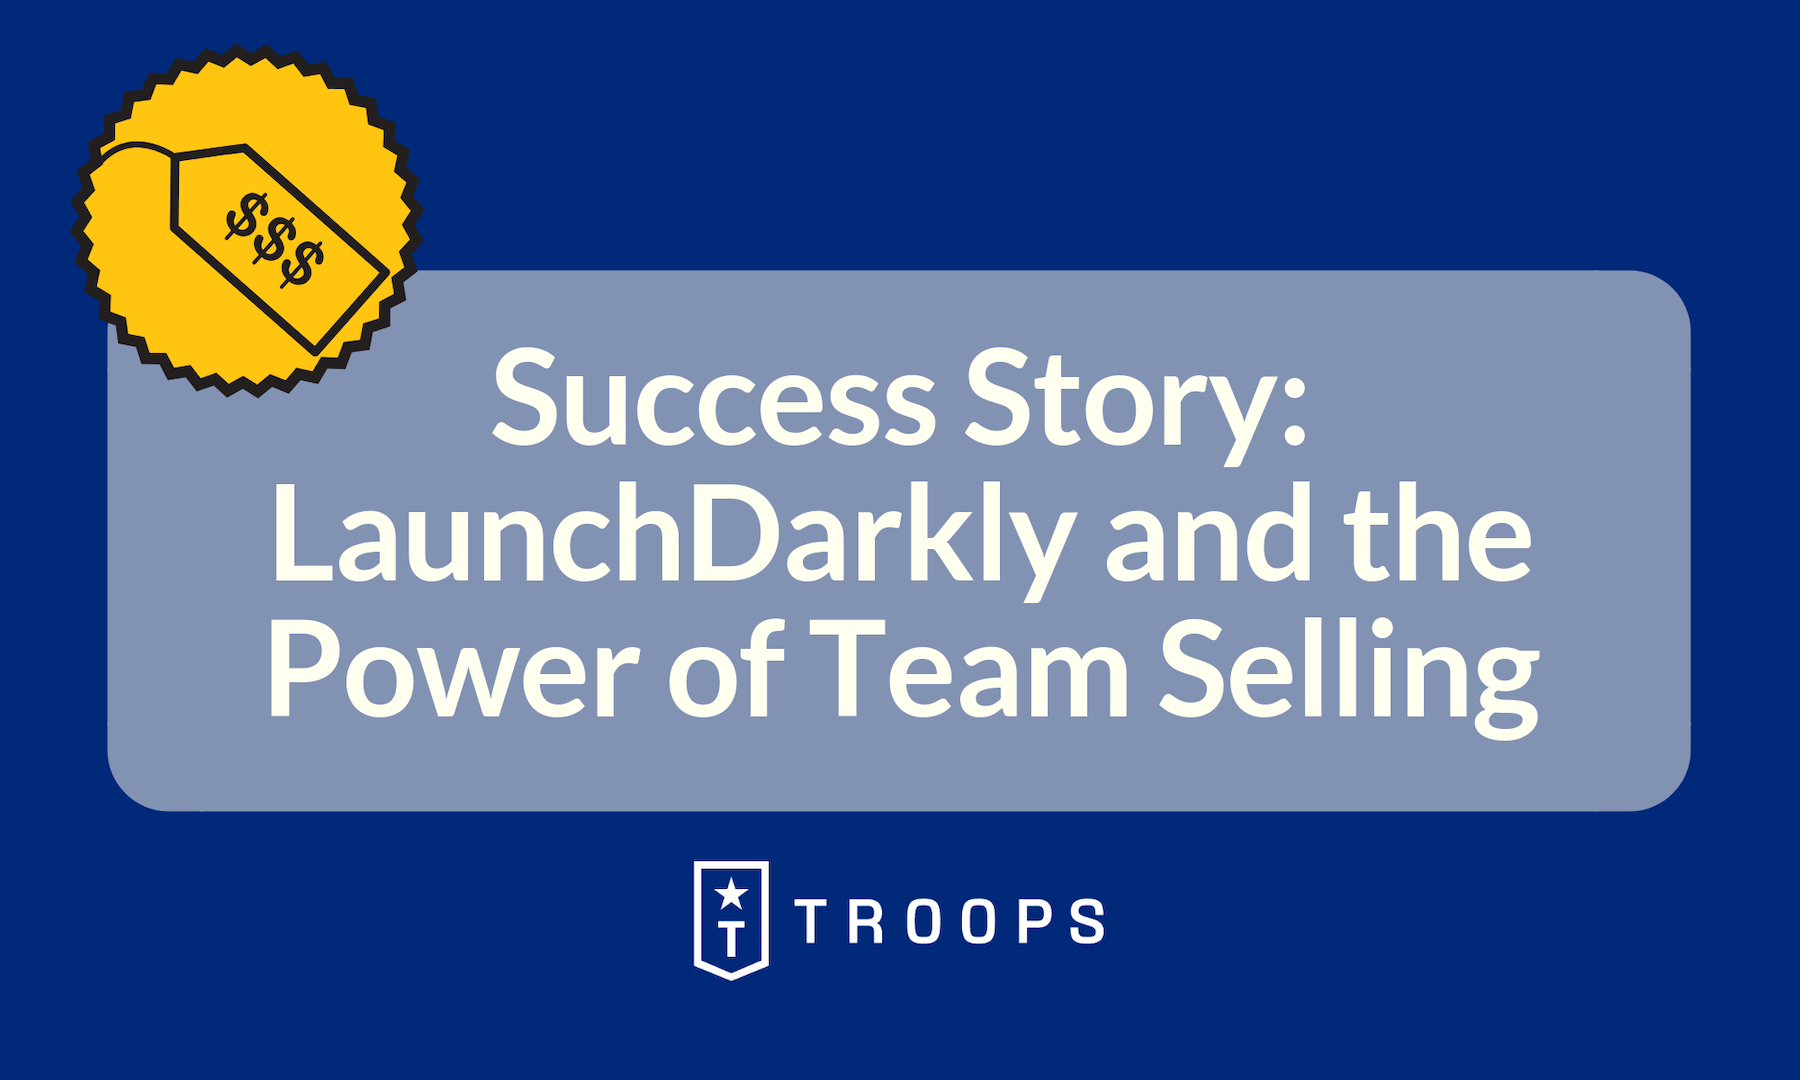 Success Story: LaunchDarkly and the Power of Team Selling